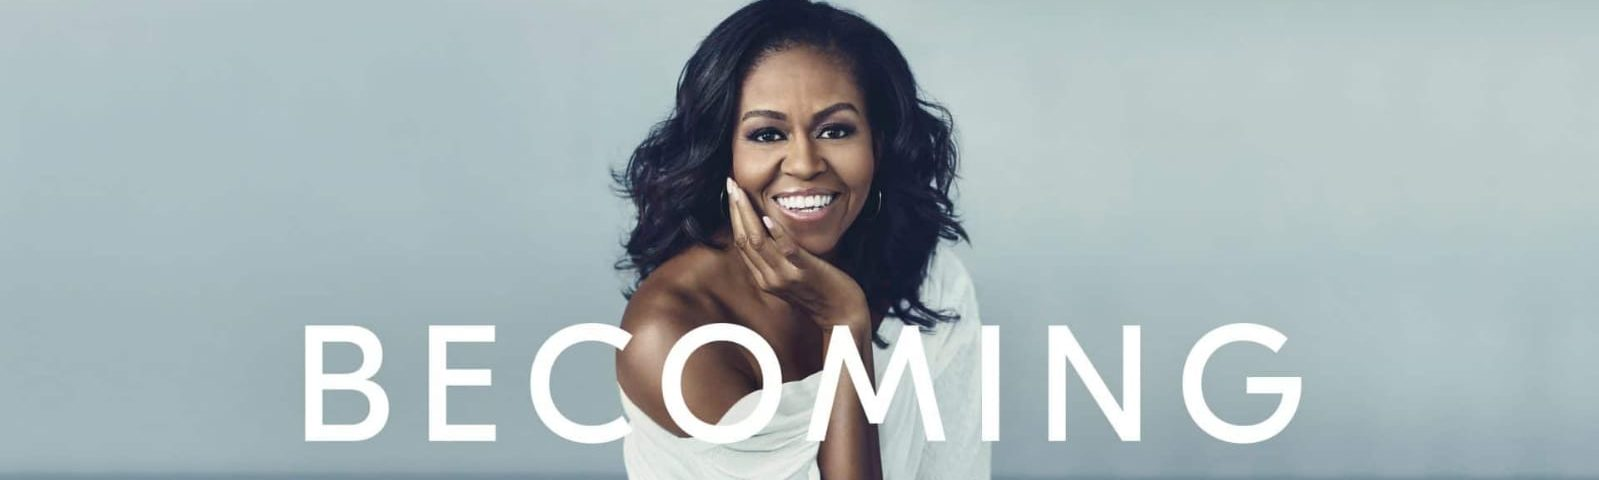 Becoming: la nuova biografia su Michelle Obama